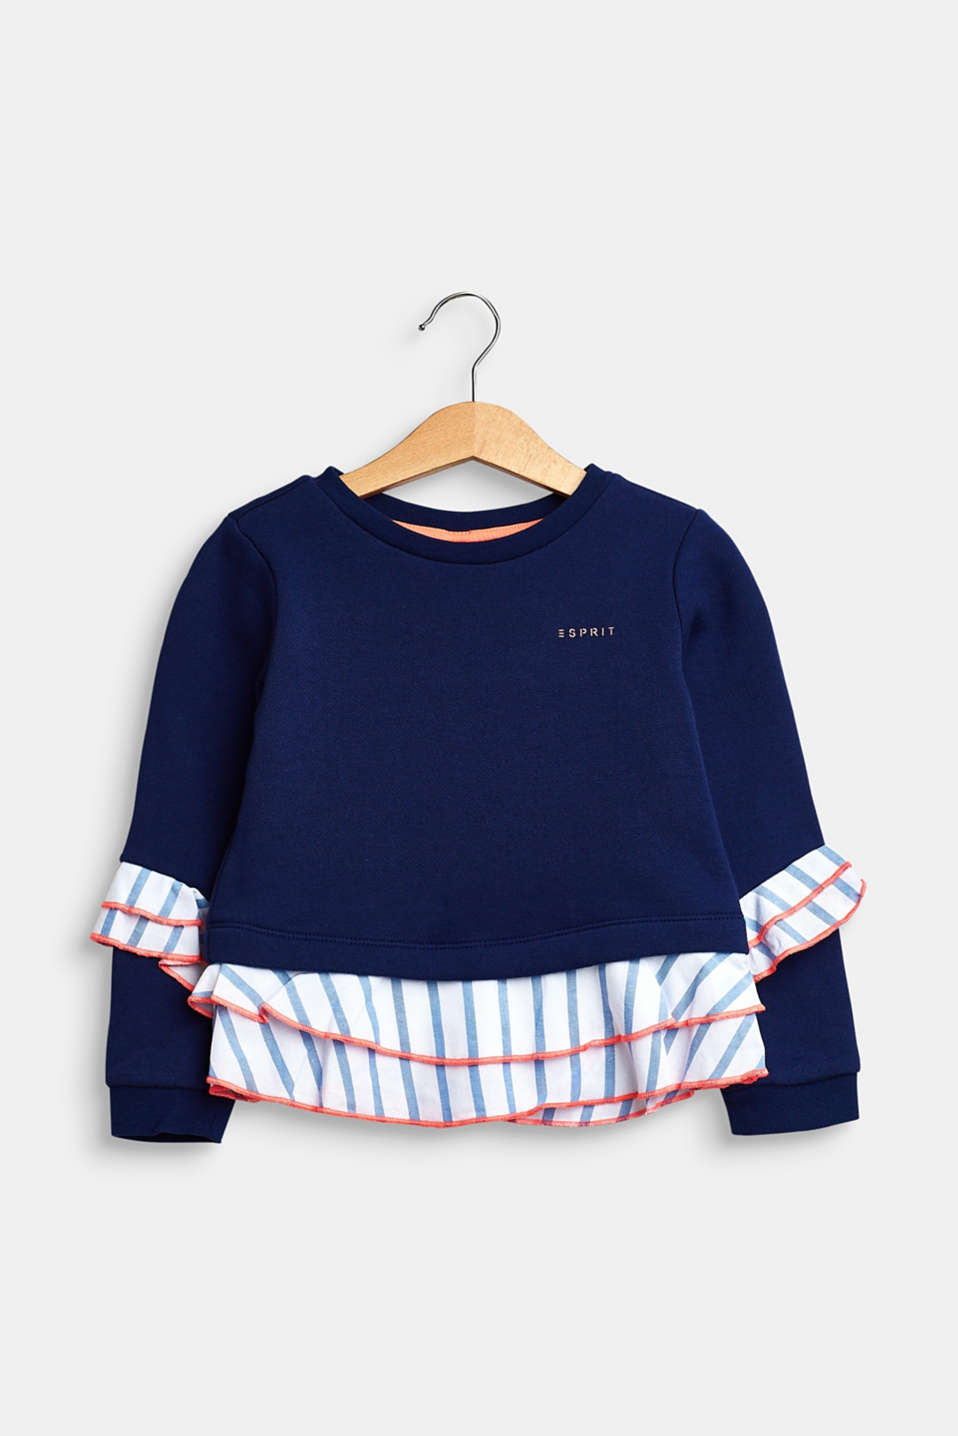 Esprit - Sweat-shirt à ruches, 100 % coton